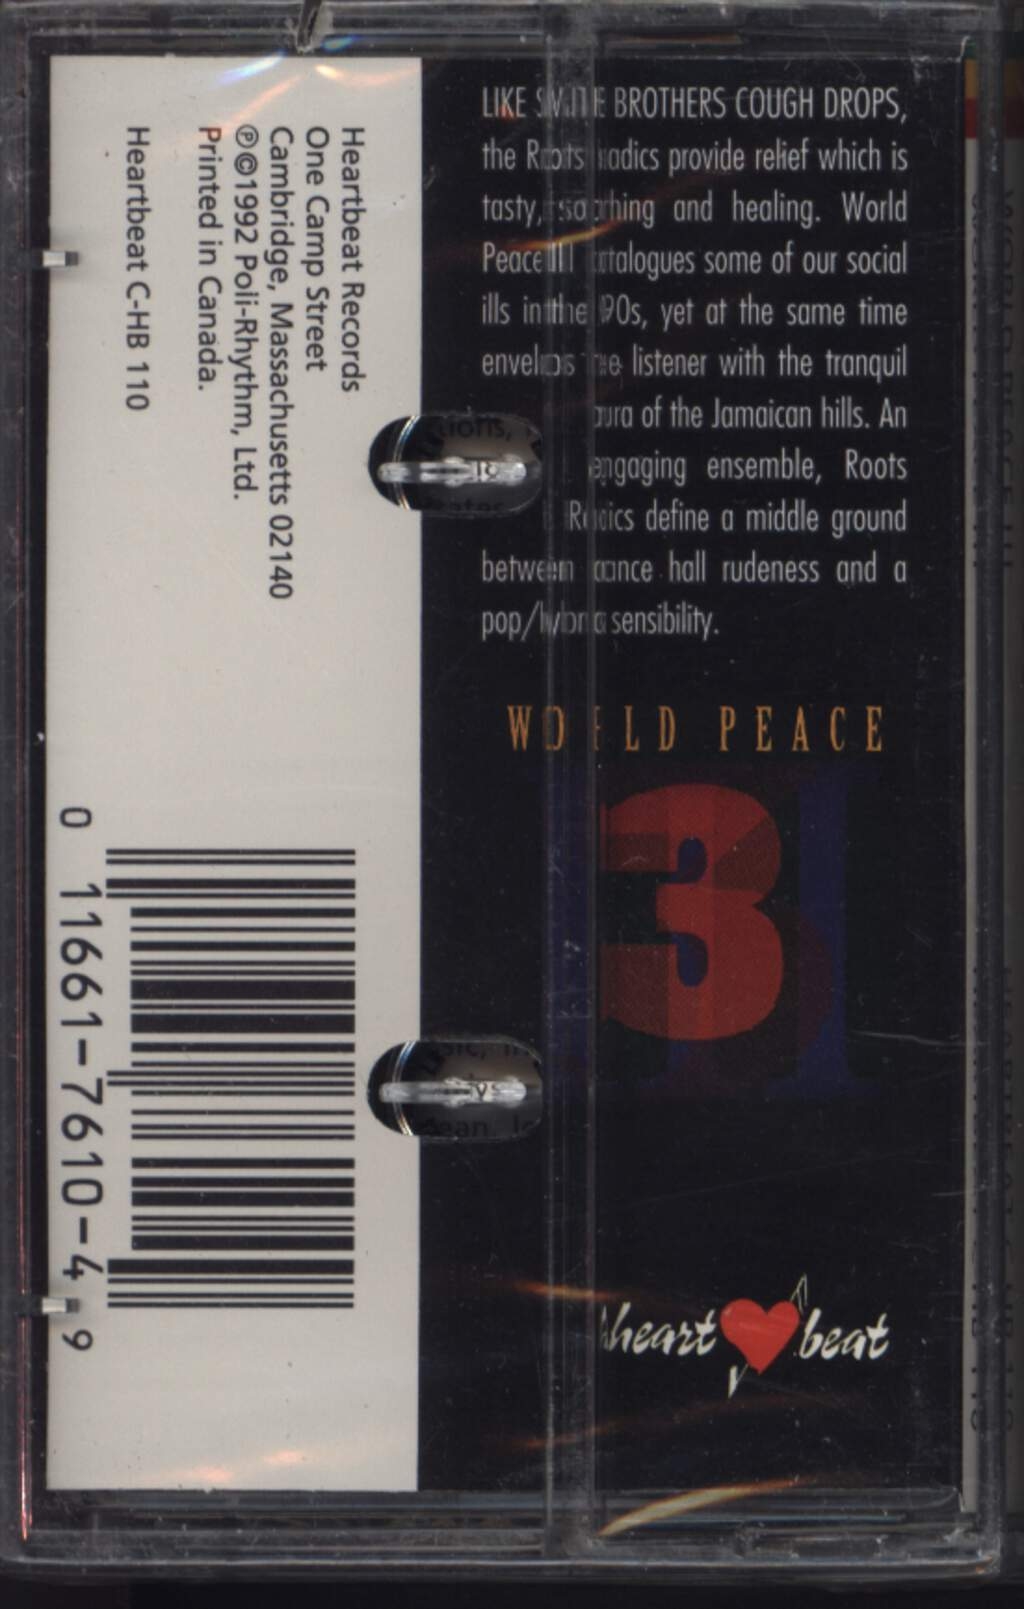 The Roots Radics: World Peace Three, Compact Cassette